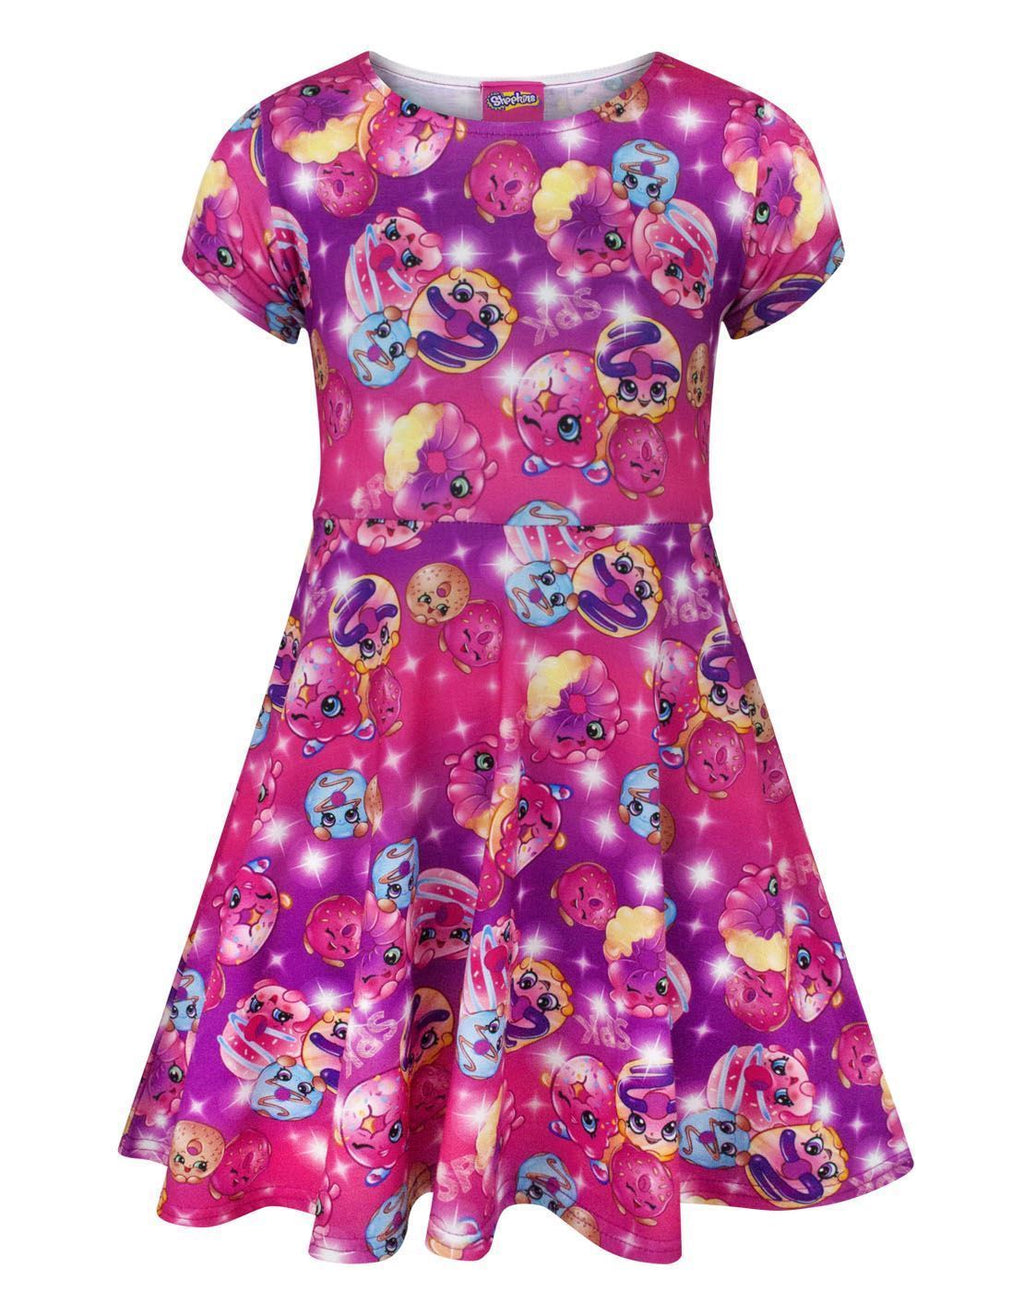 Shopkins D'Lish Donut Girl's Short Sleeved Dress